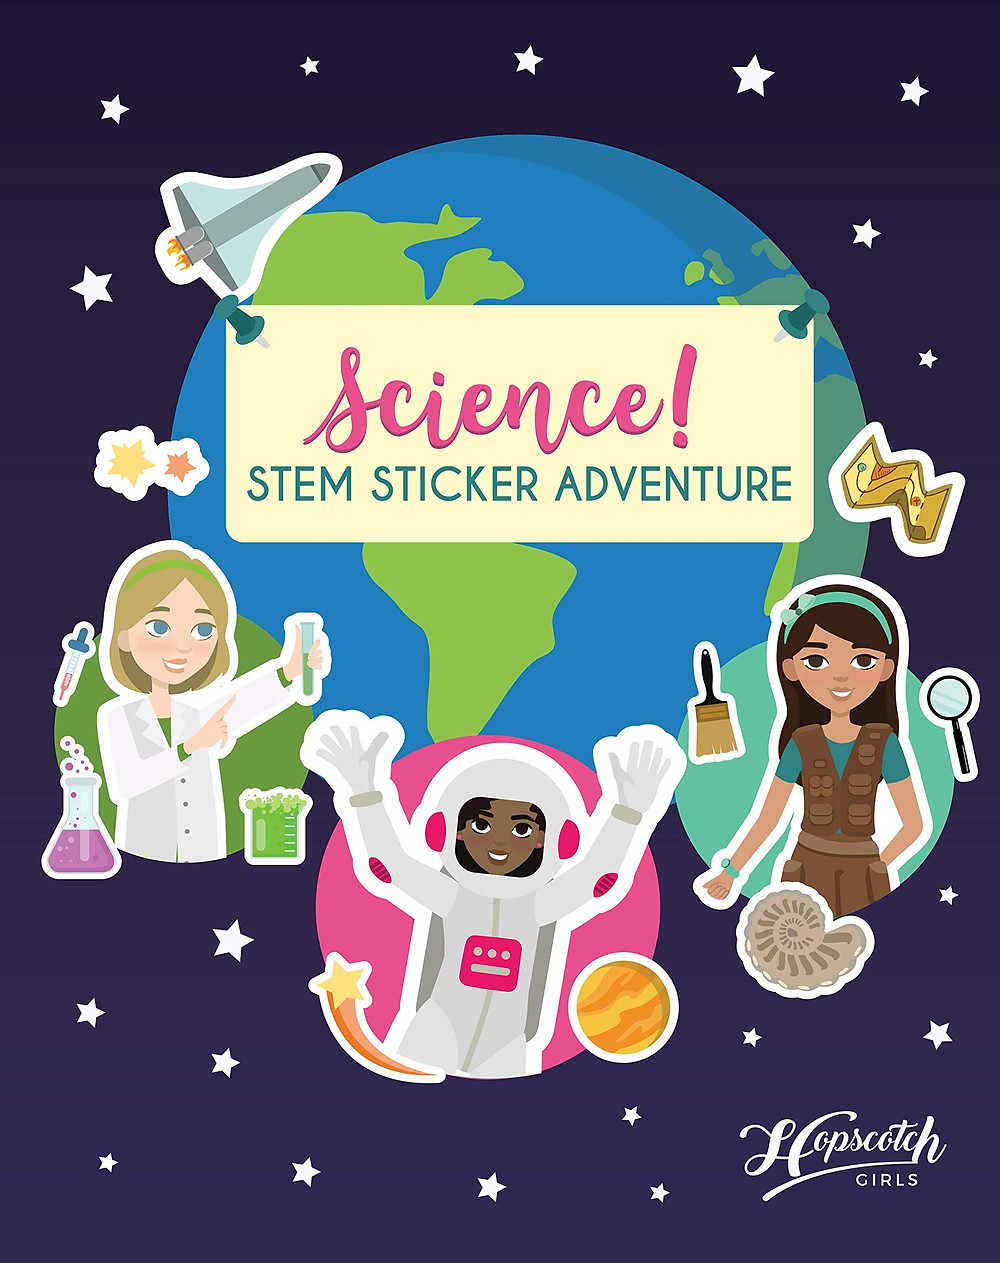 Cover of Science! Stem sticker adventure featuring girls of many identities in STEM careers